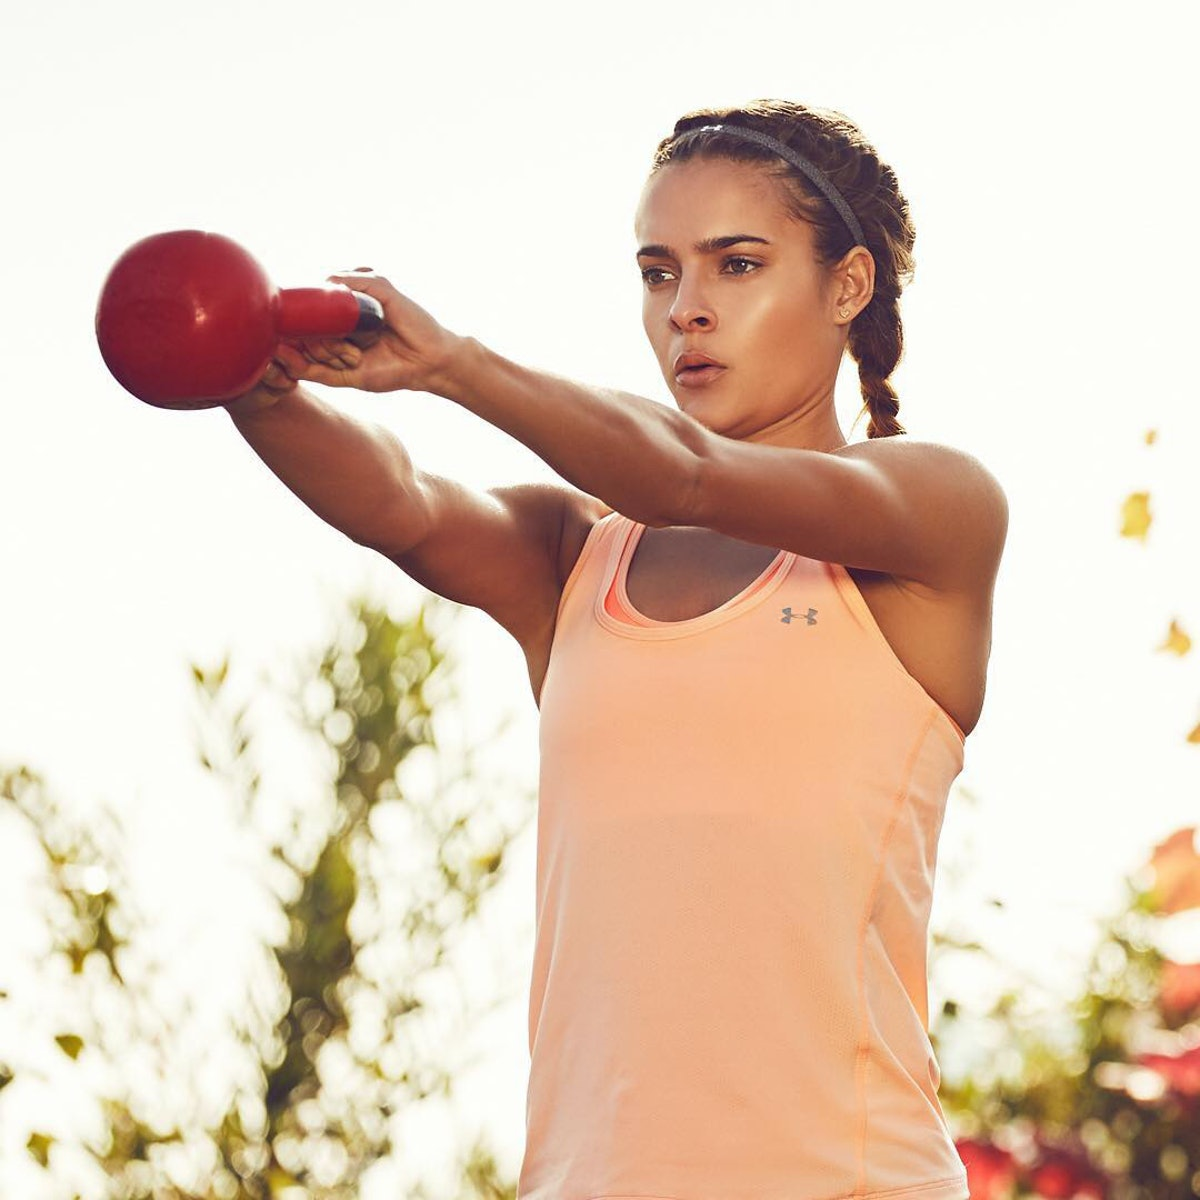 The Workout All Women Should Be Doing But Aren't